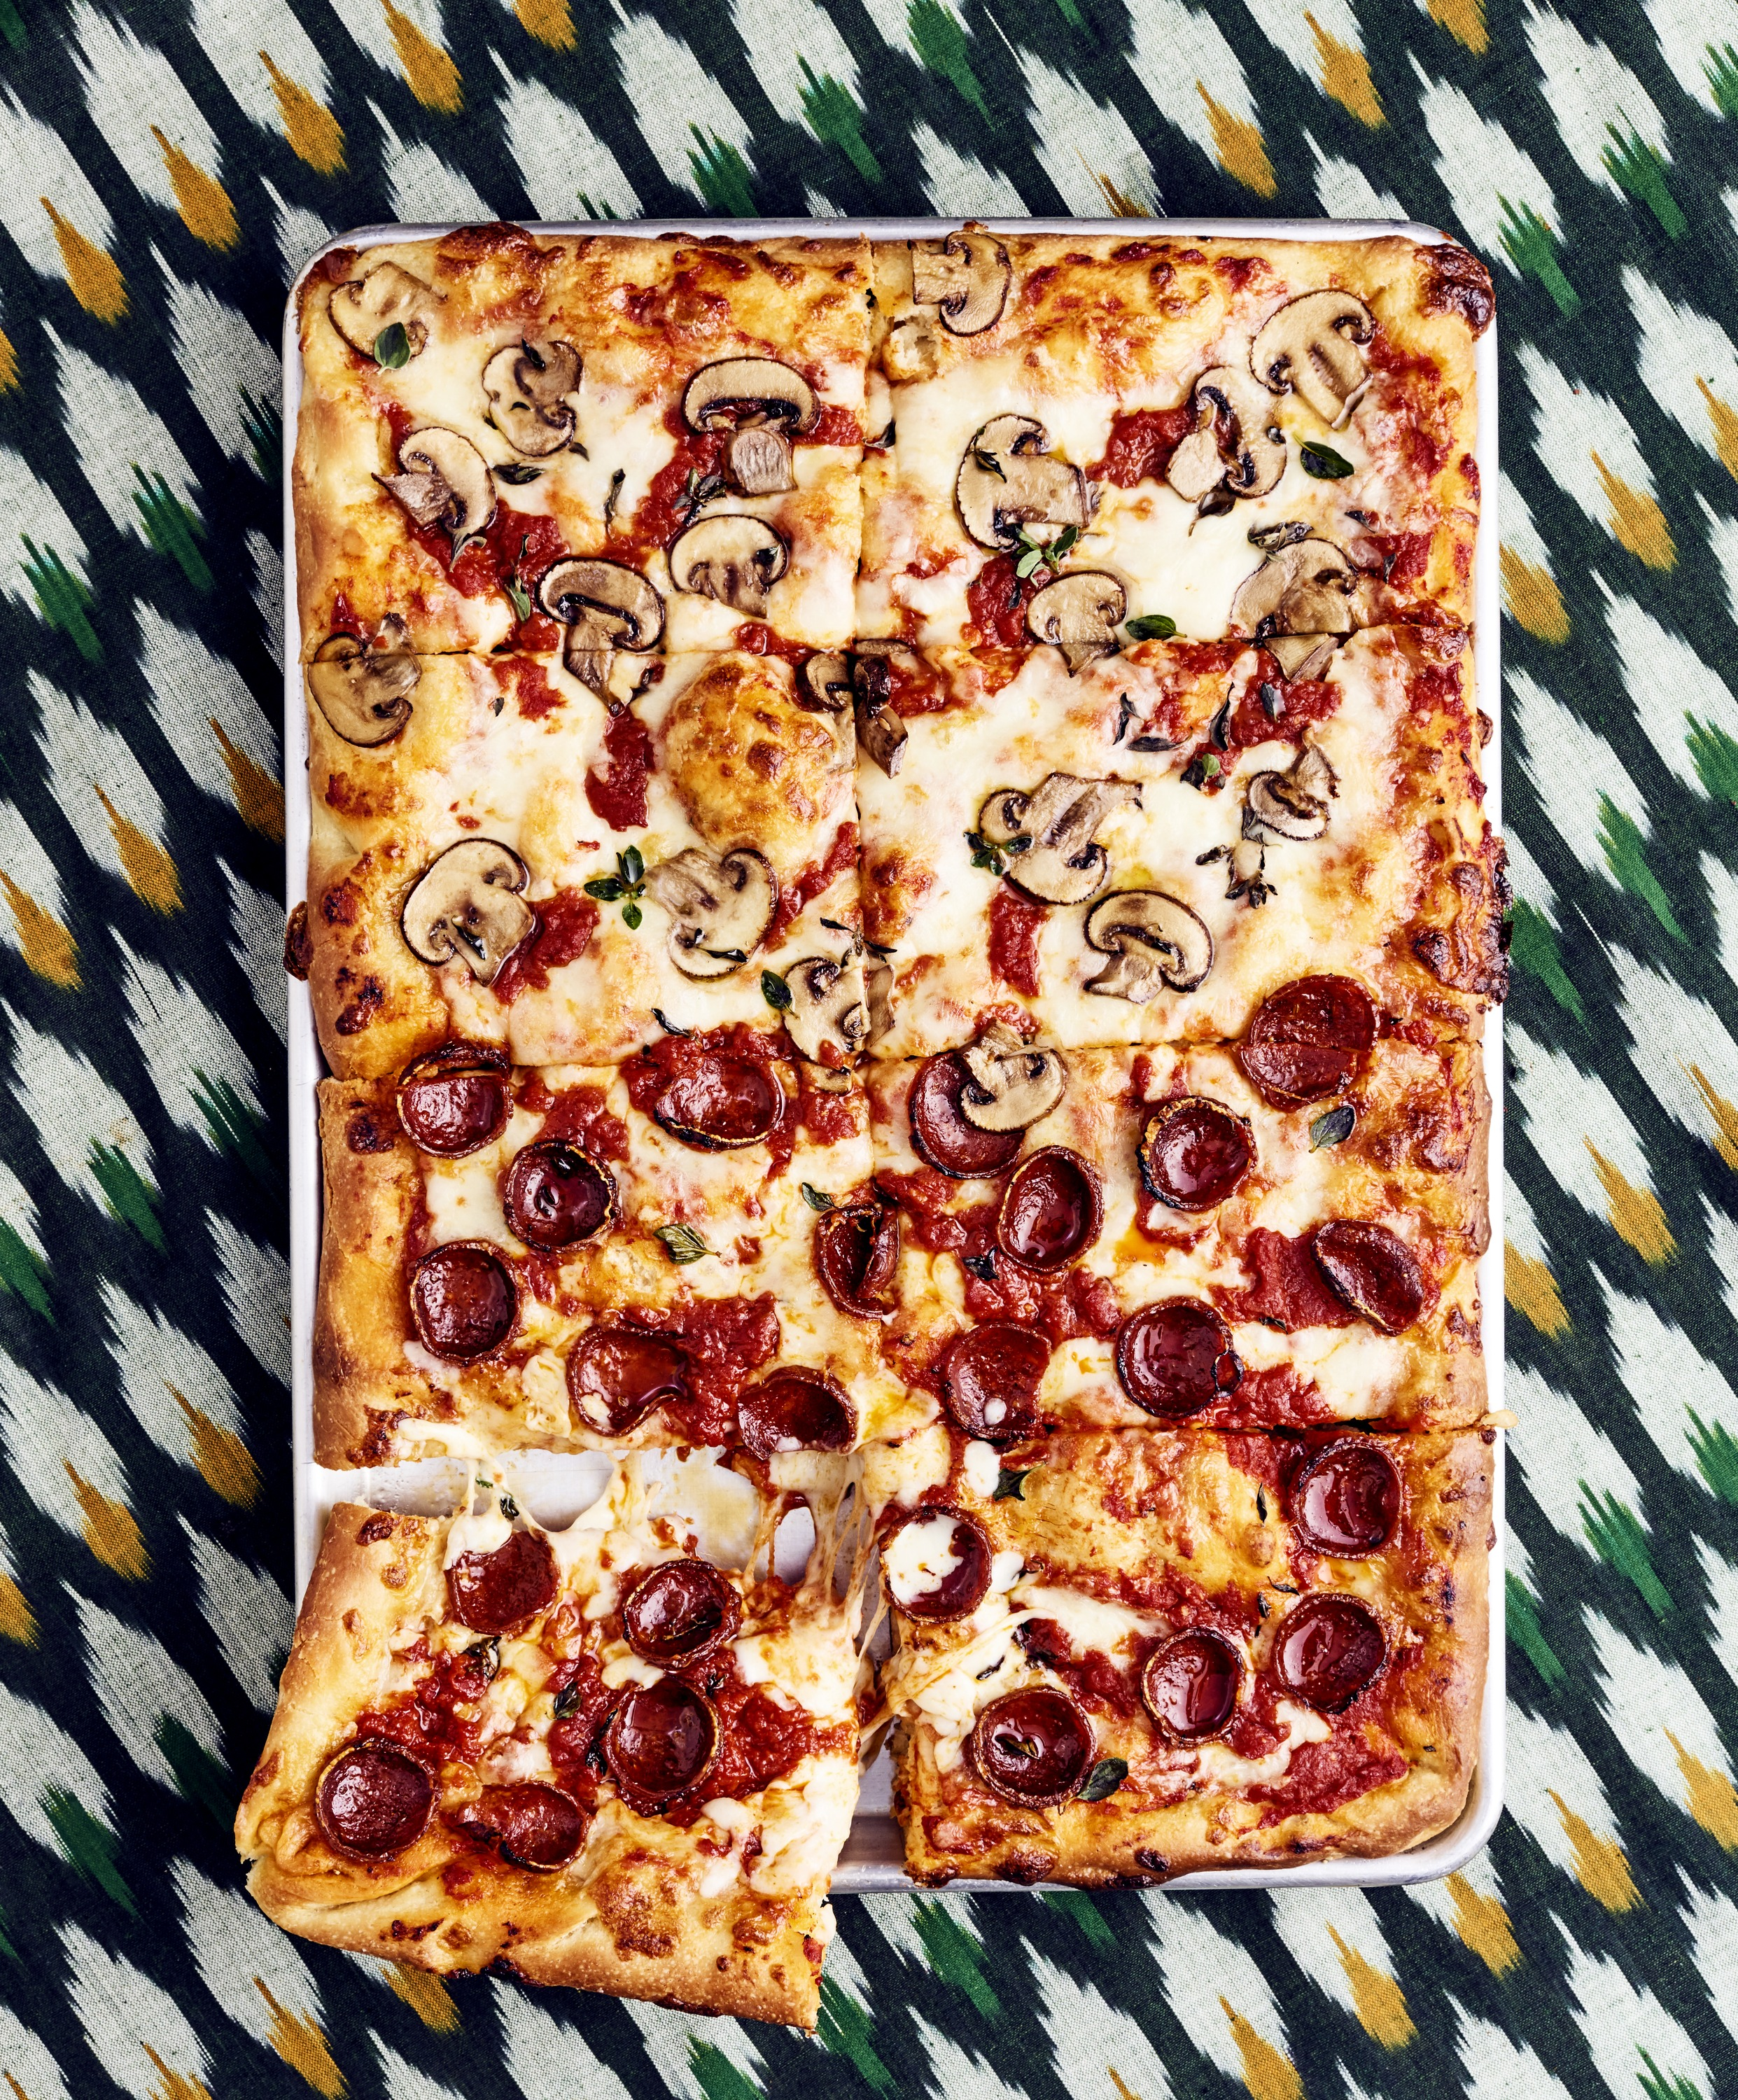 Make the Best Pizza from Scratch with Our Test Kitchen's Latest, Greatest Recipes